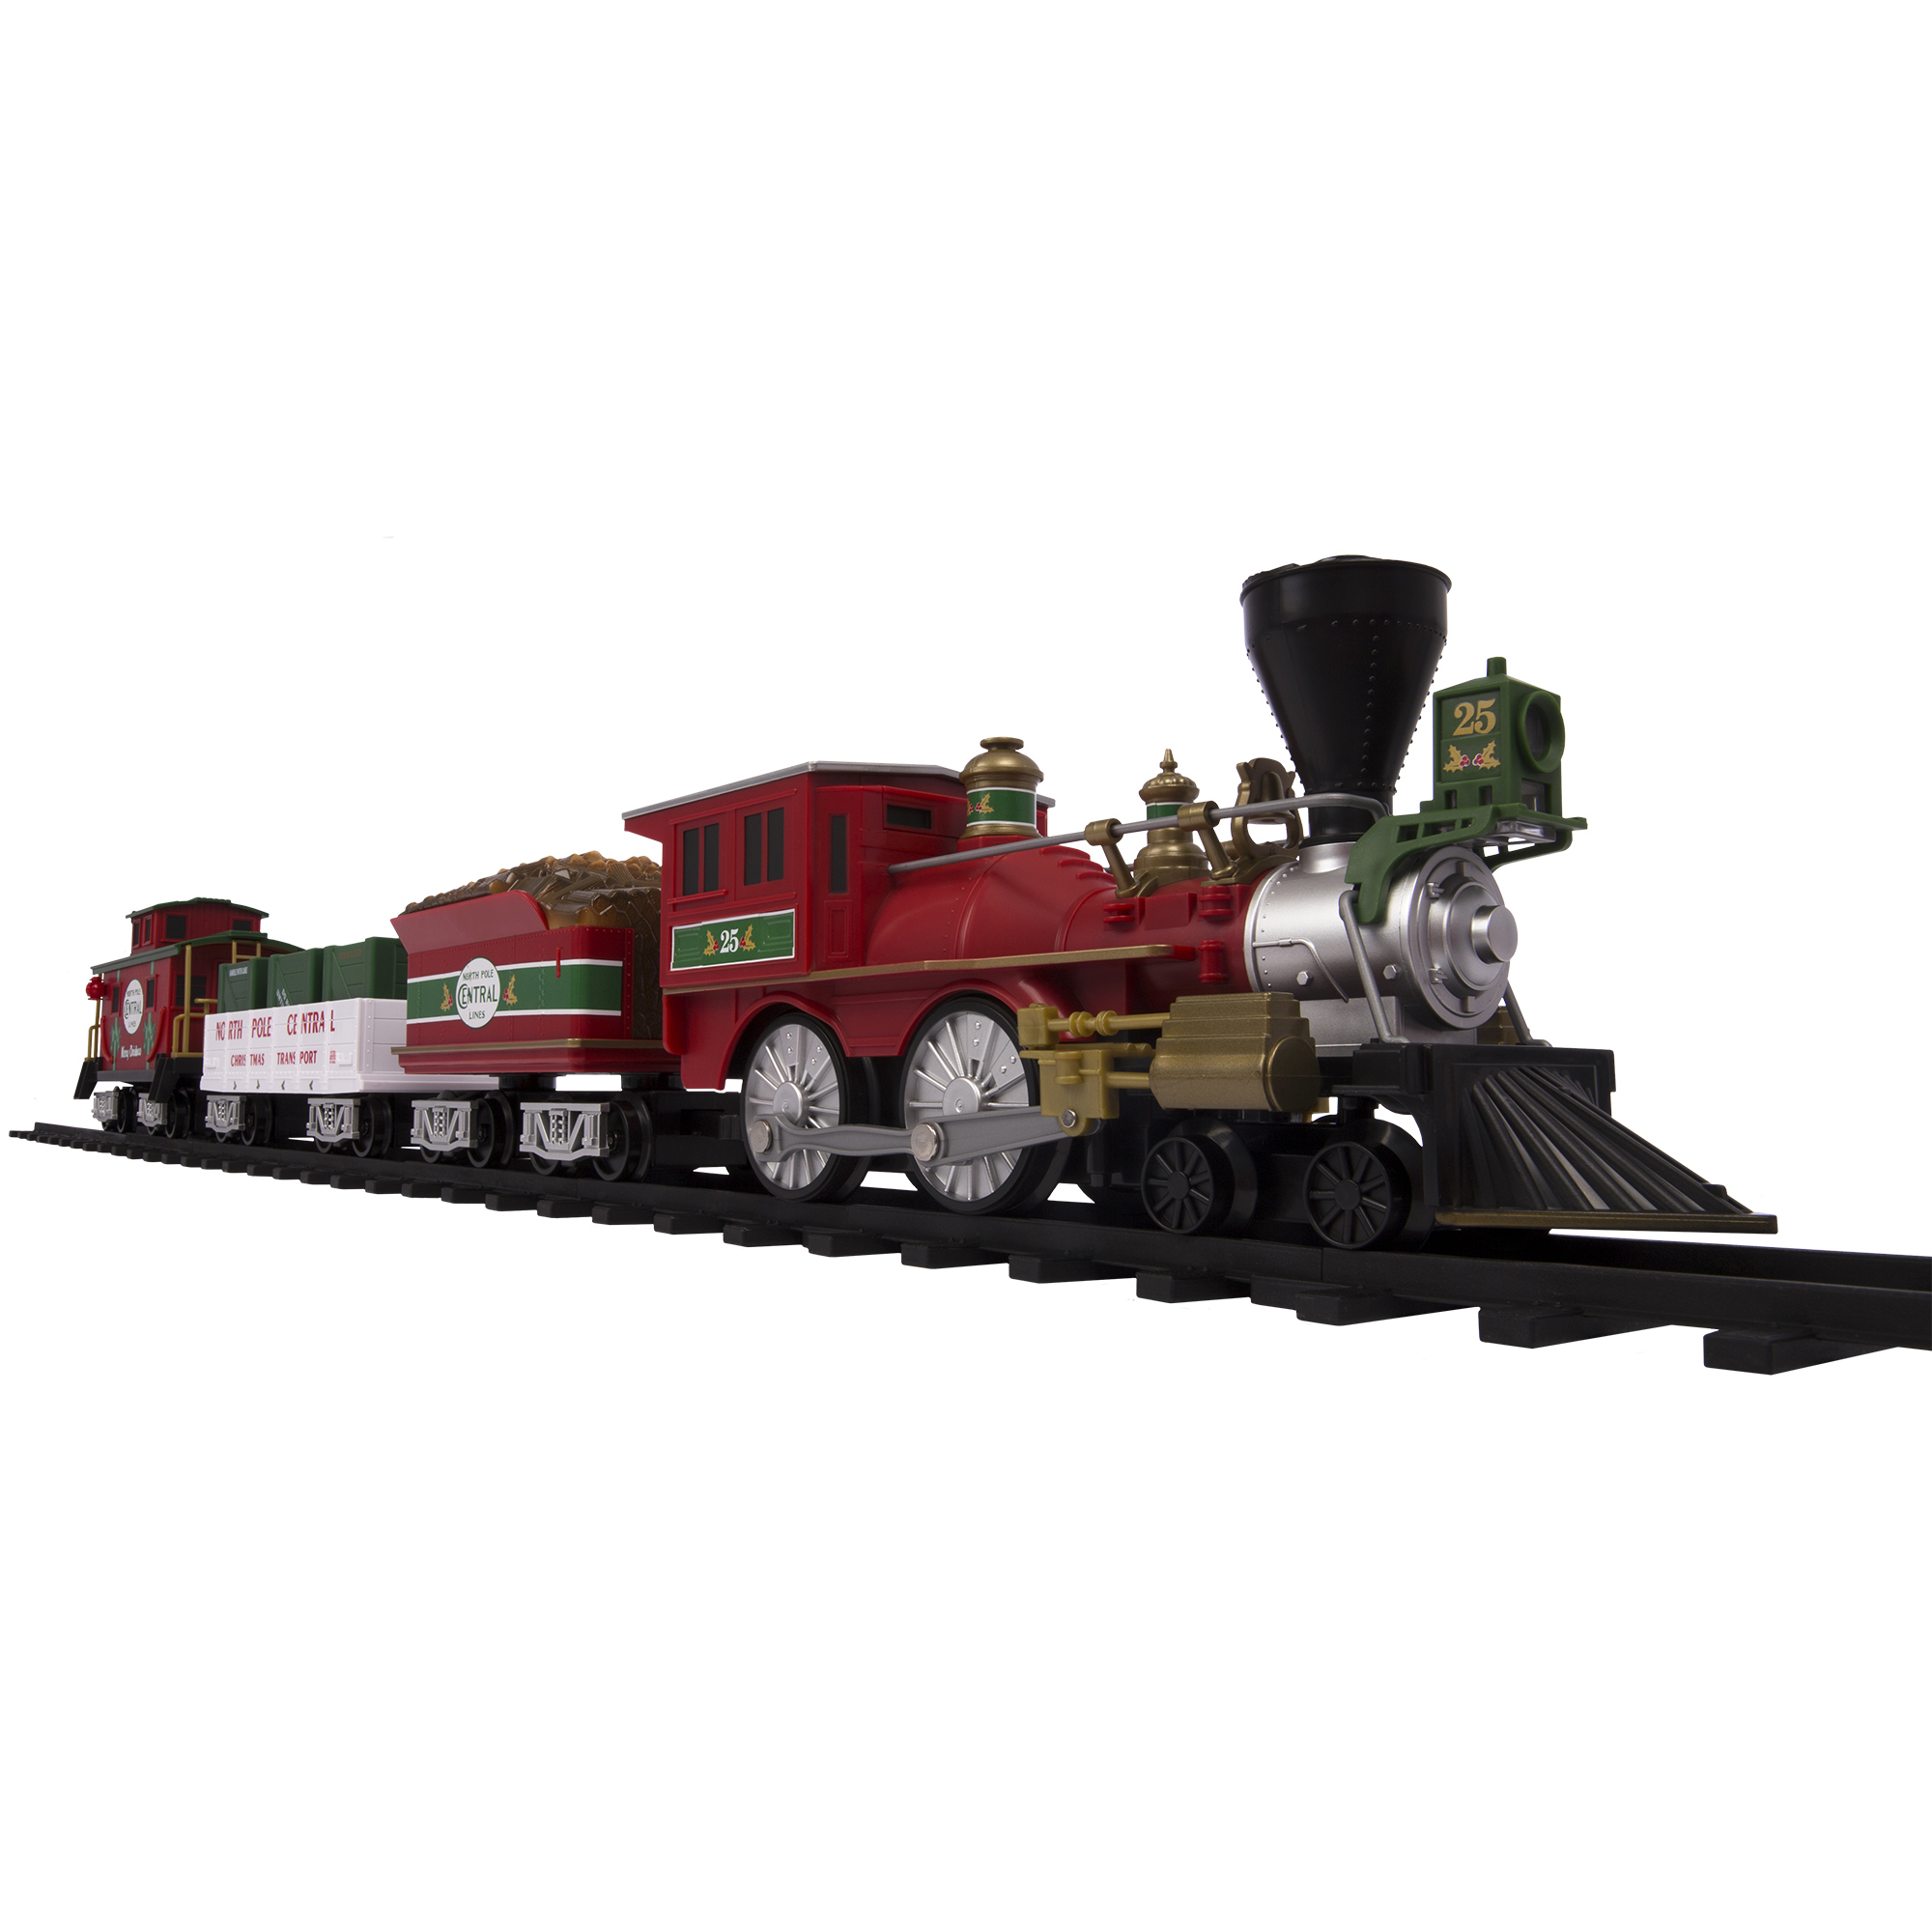 Lionel Trains North Pole Central Seasonal Ready to Play Set by Lionel Trains